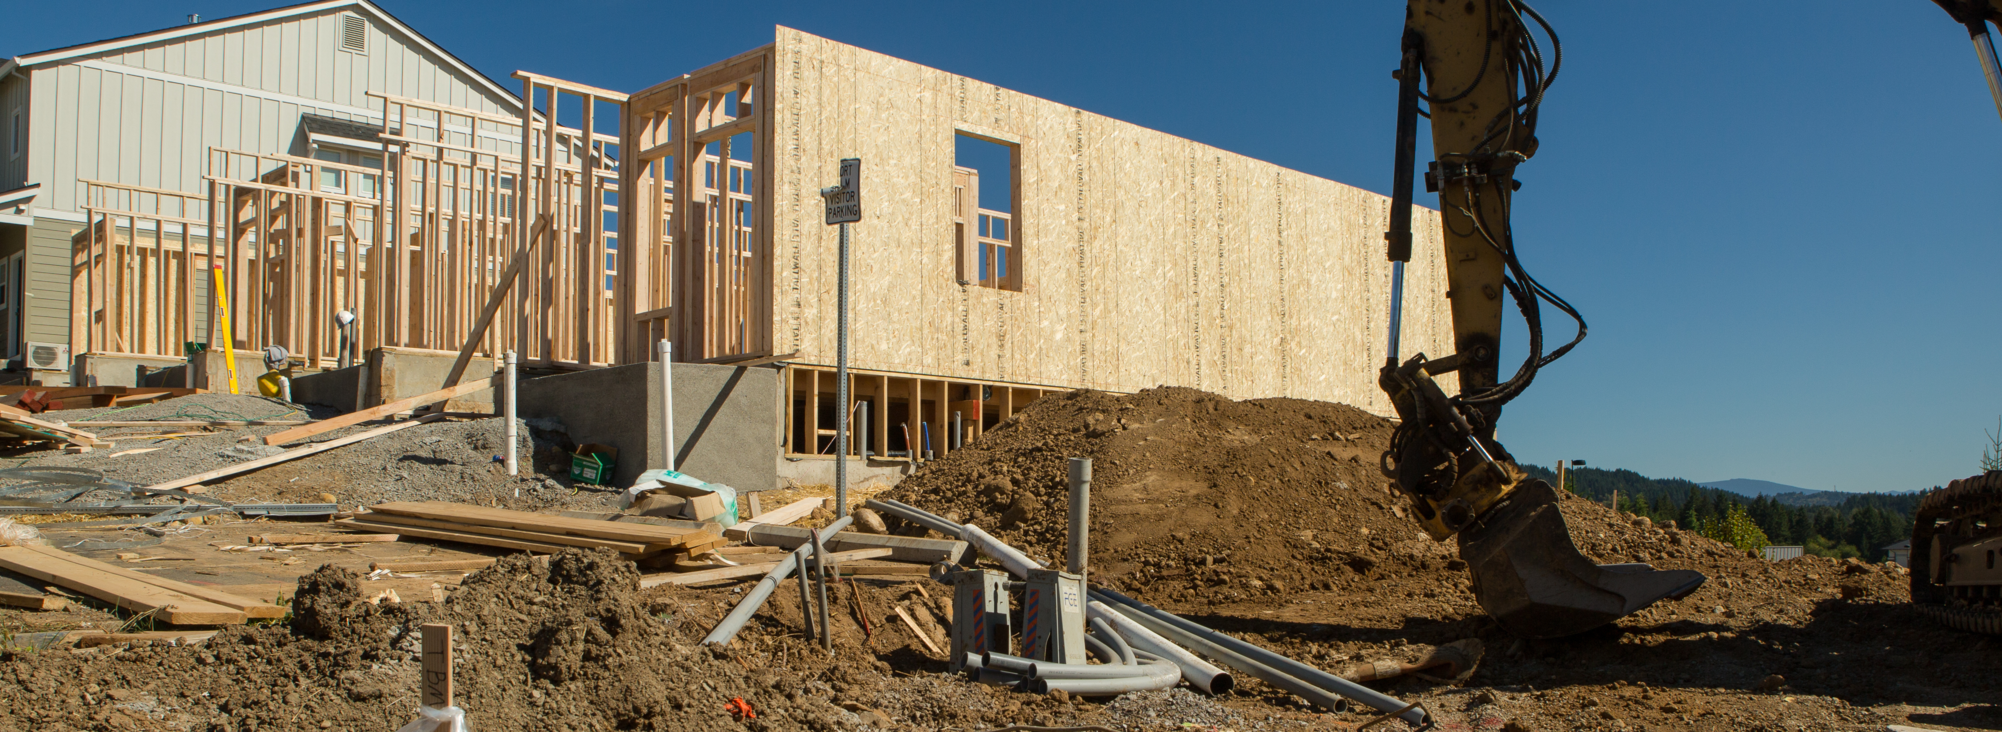 Housing construction in Happy Valley, Clackamas County